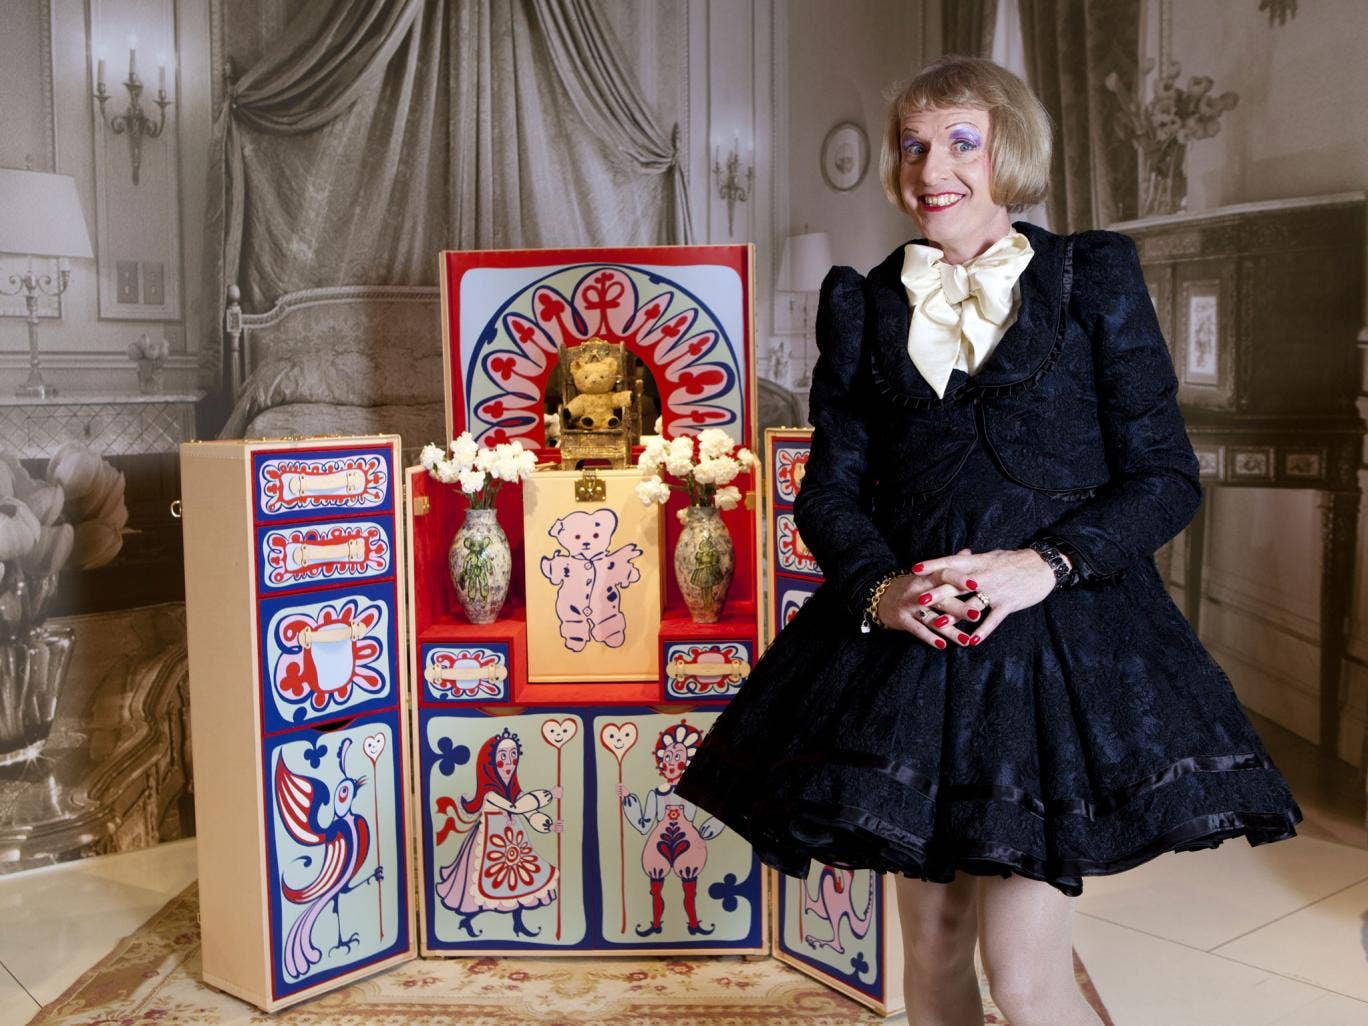 Grayson Perry with the Louis Vuitton trunk he designed, including a replica of his childhood teddy bear Elton